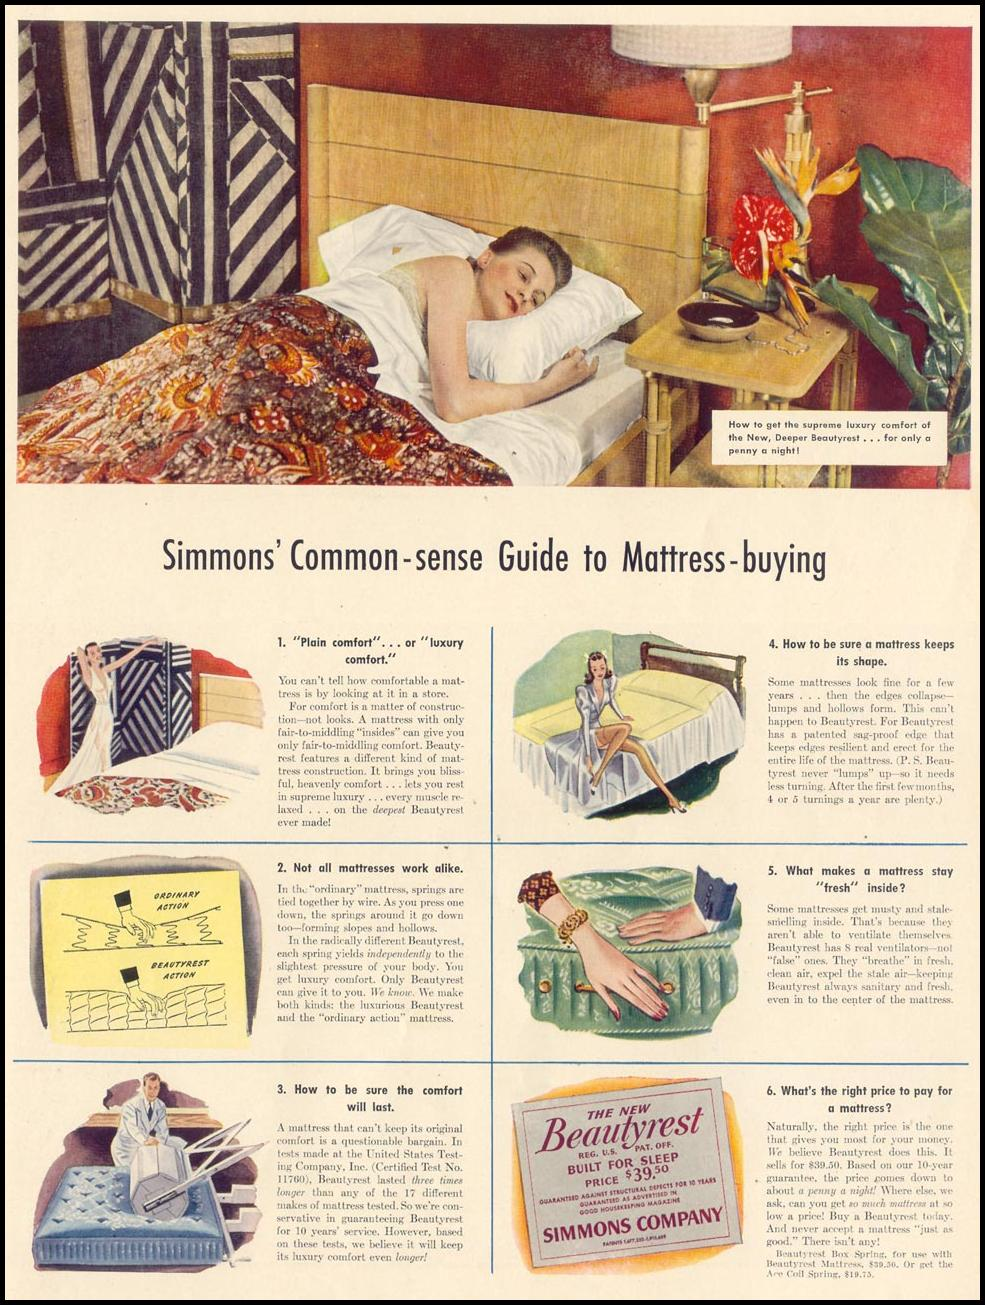 SIMMONS BEAUTYREST MATTRESS LIFE 09/30/1940